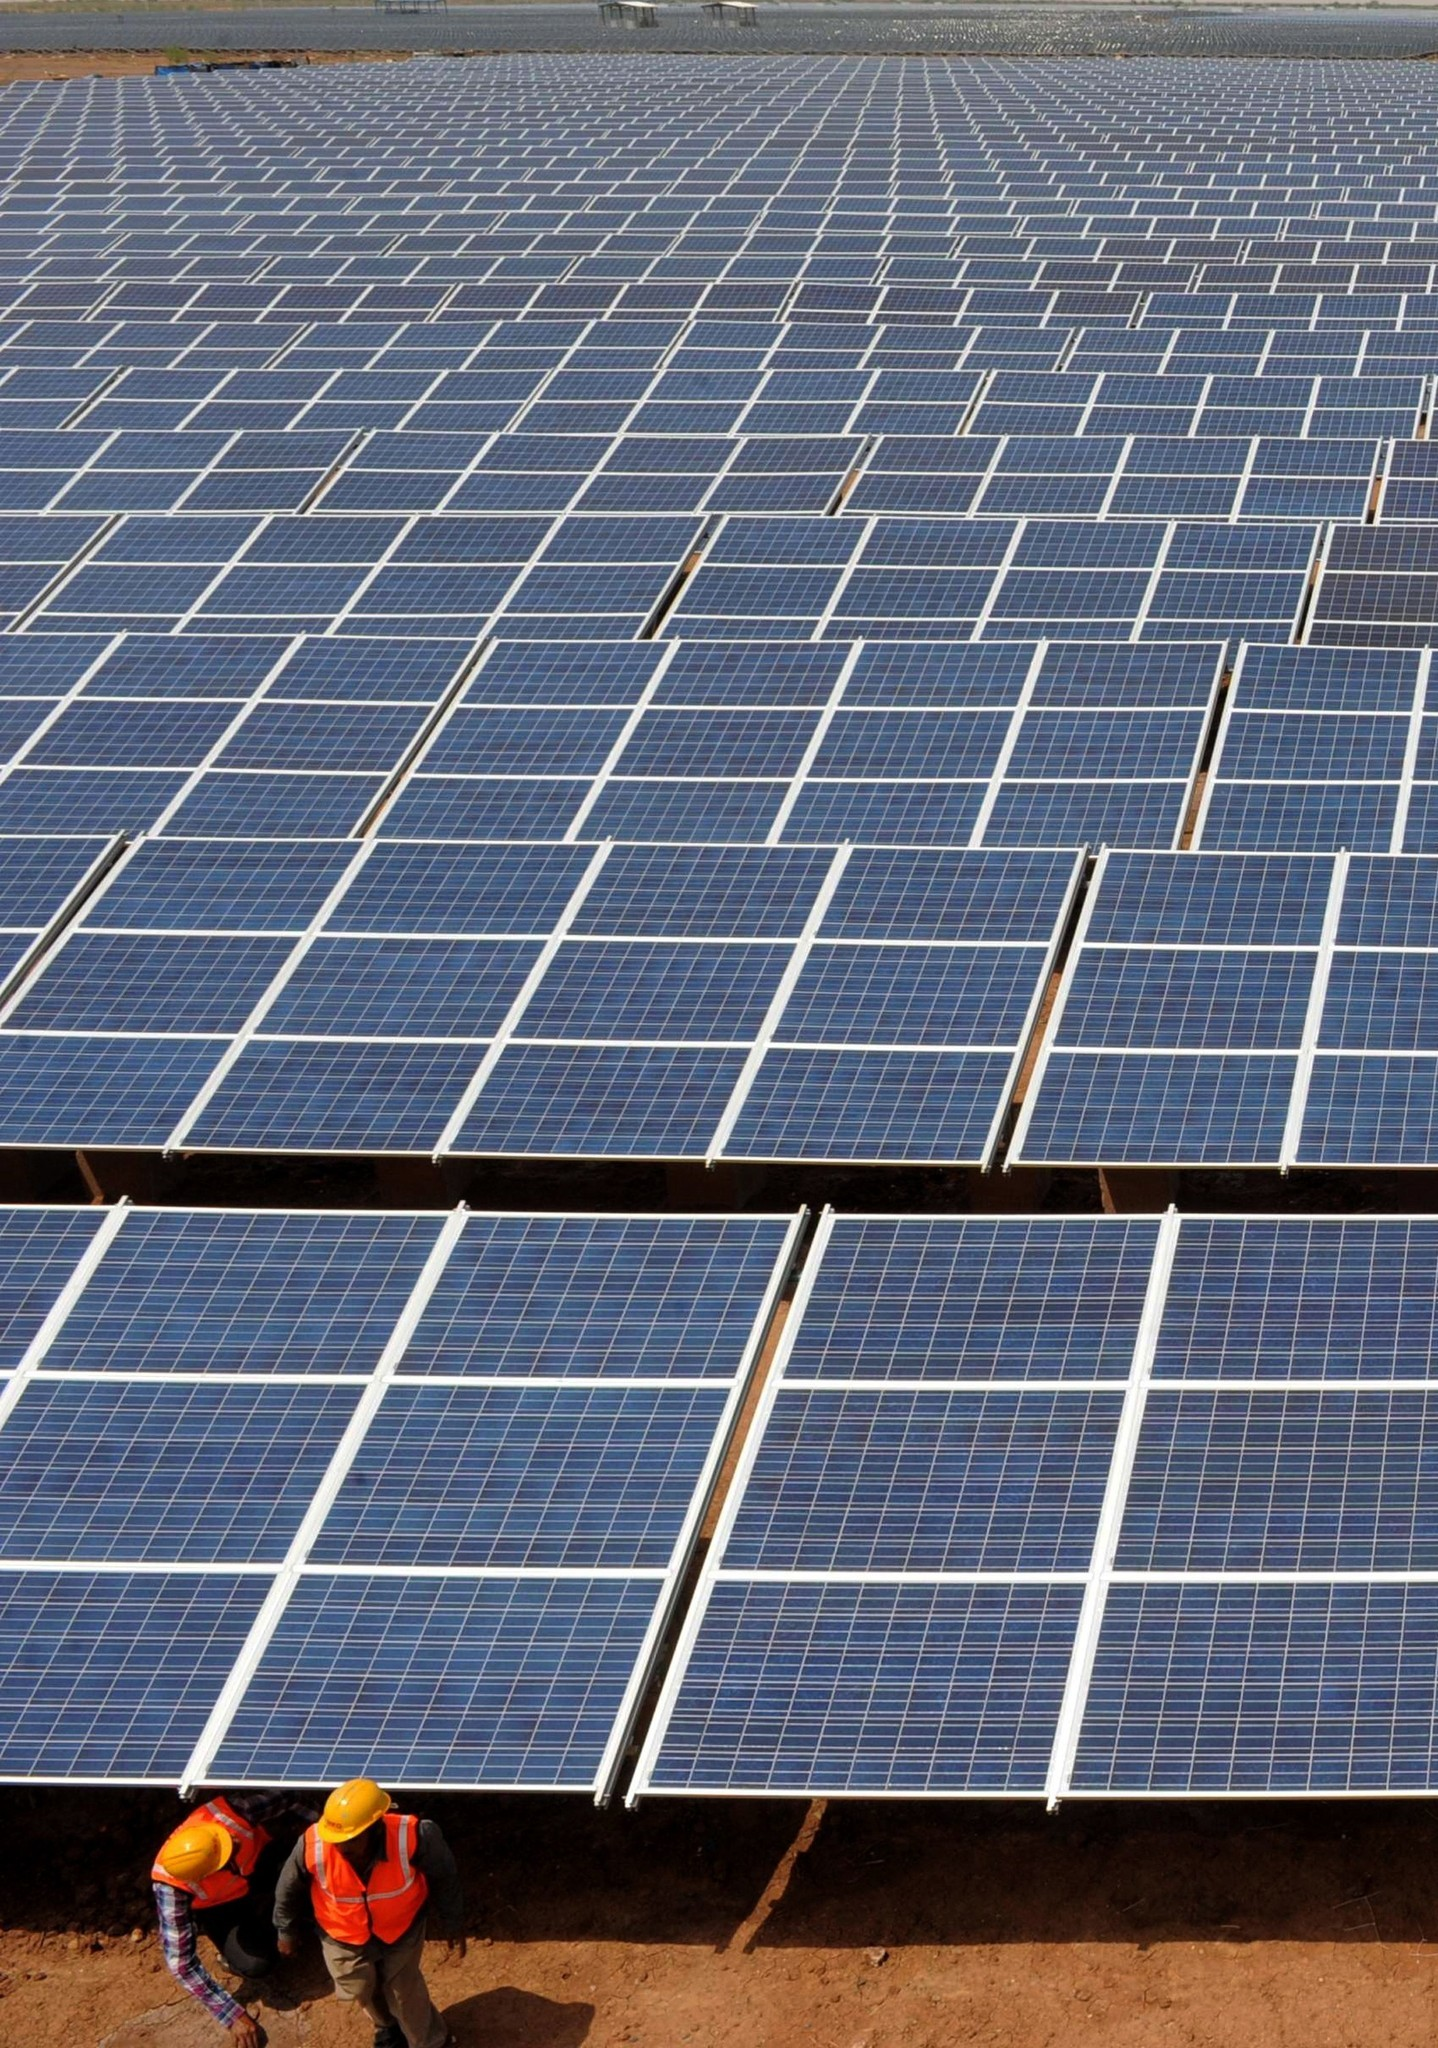 Fpl To Install Solar Panel Canopies At Museum In Davie